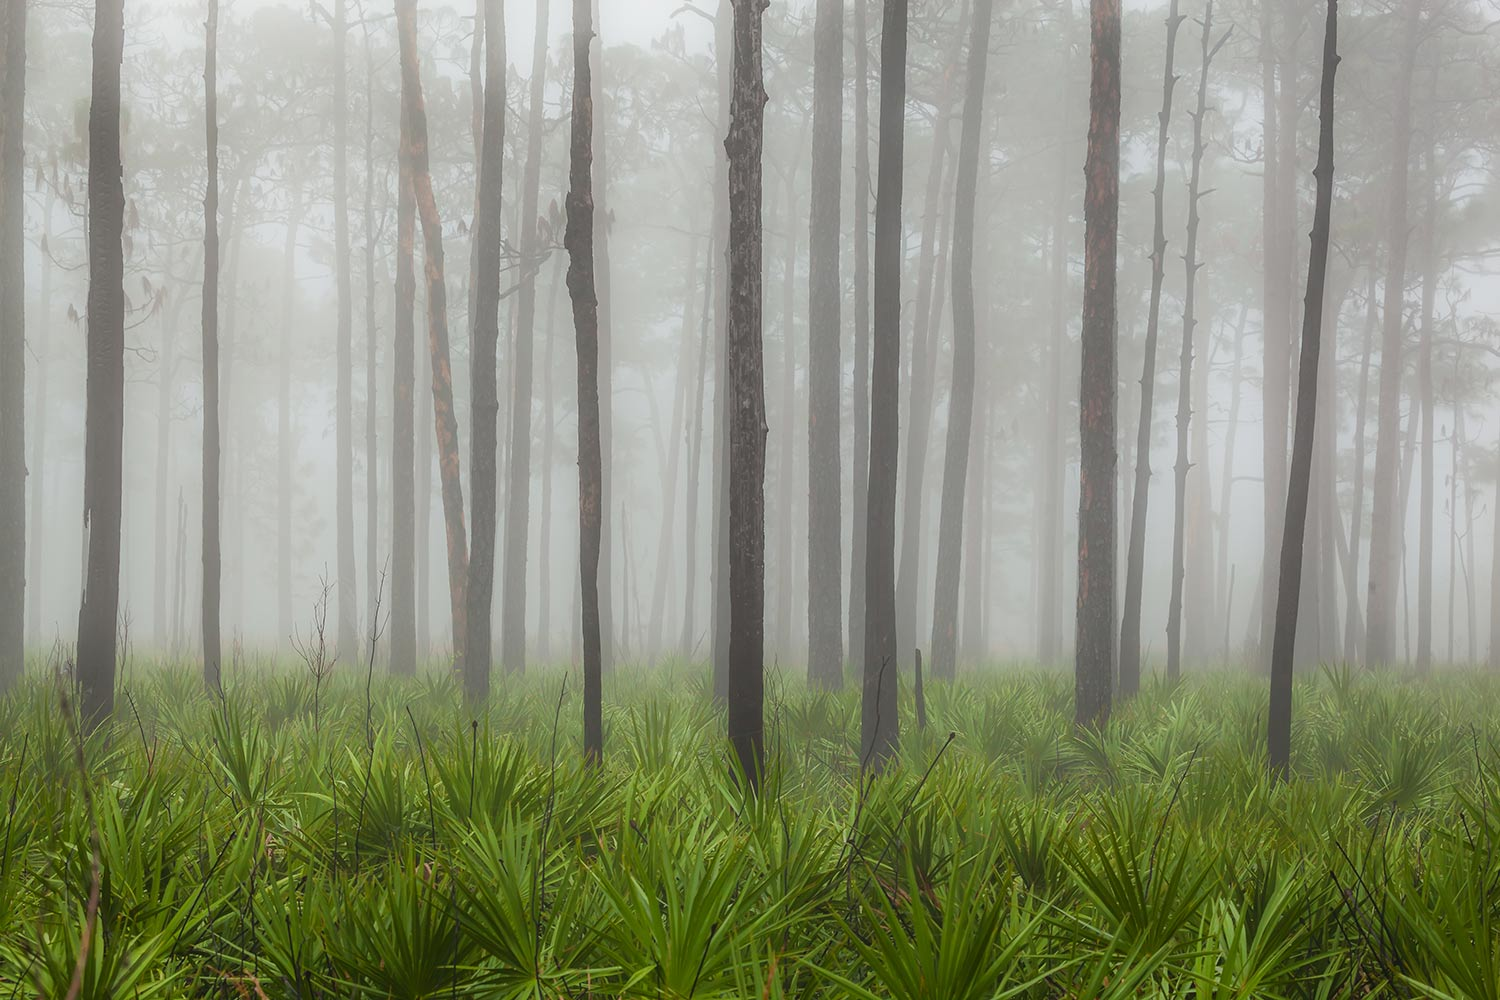 Foggy morning in the tall pines and palmettos of Split Oak Forest.